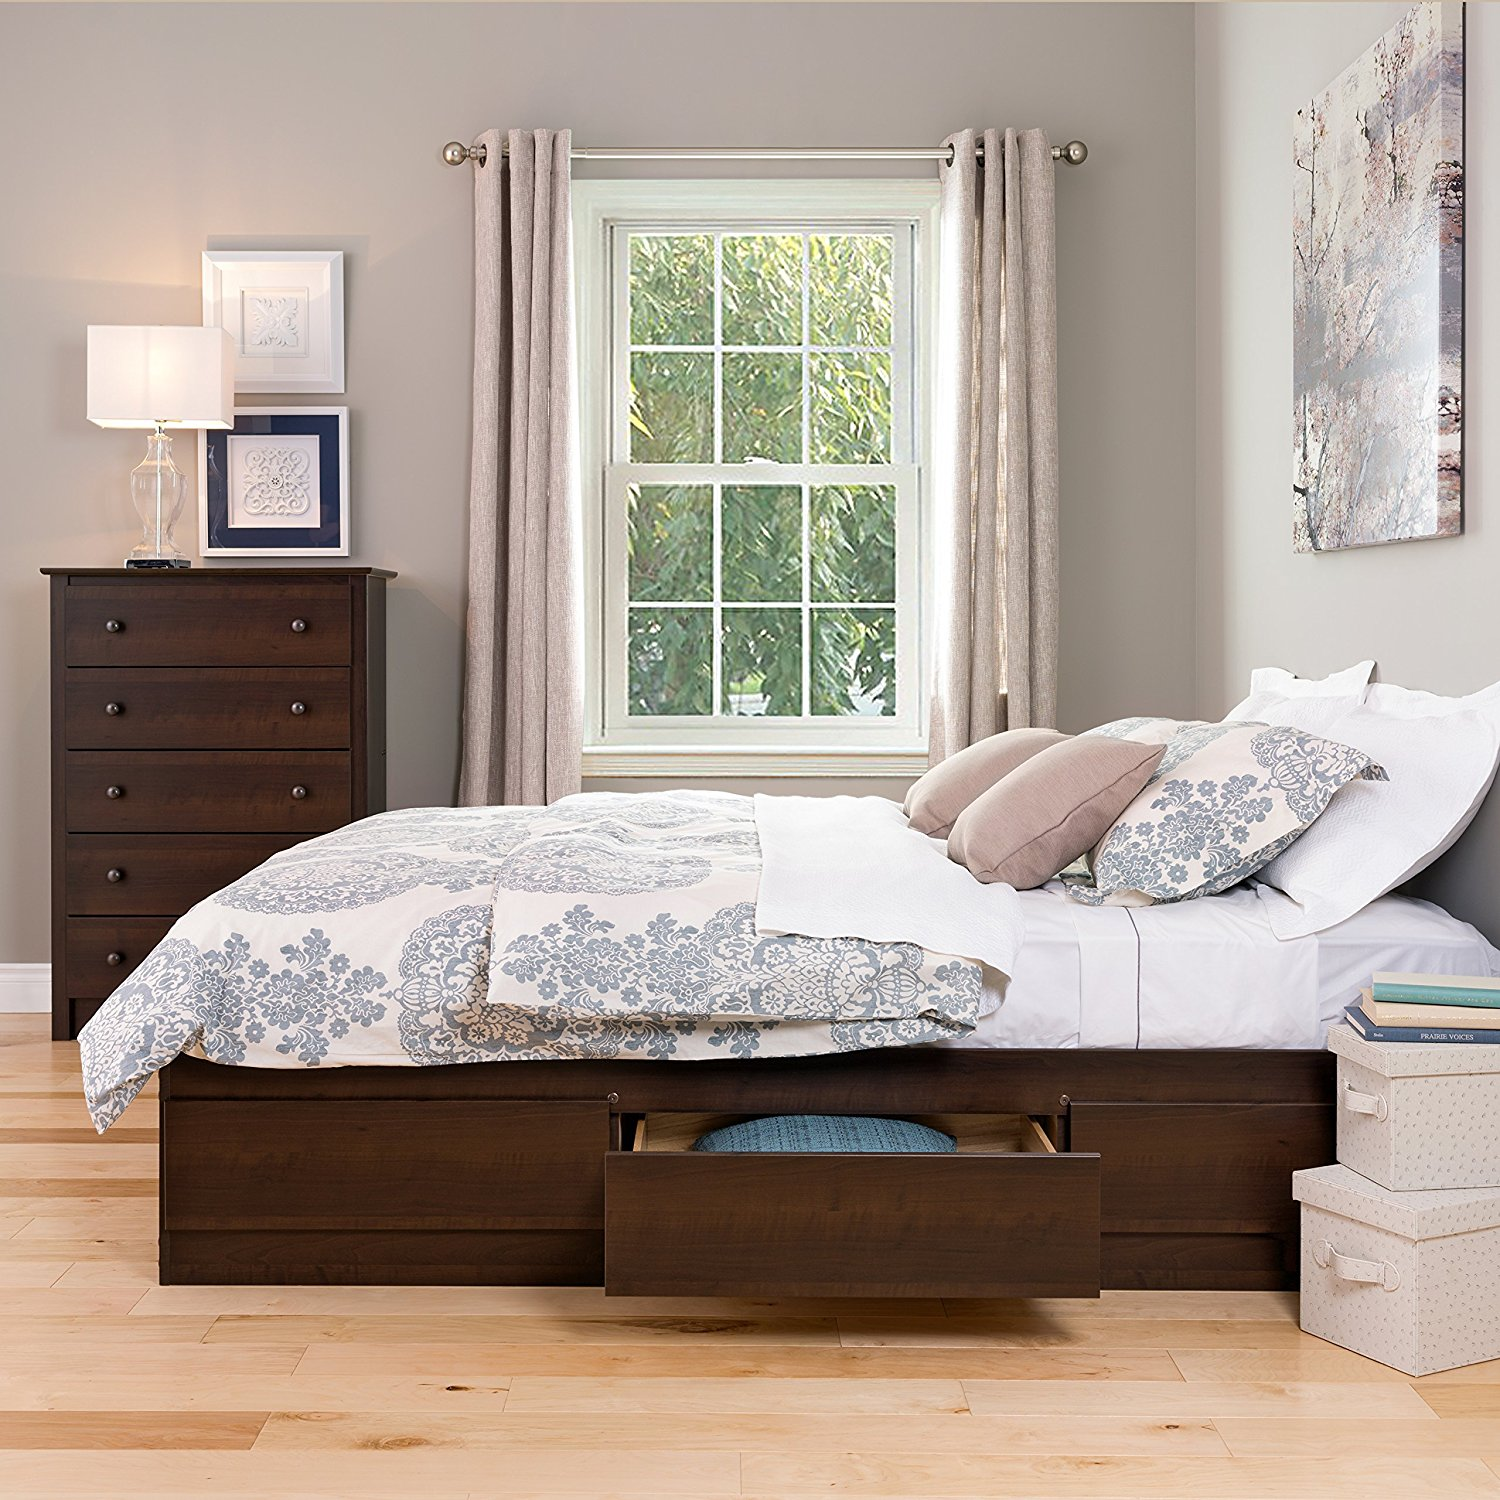 Image of: Drawer for Queen Size Bed